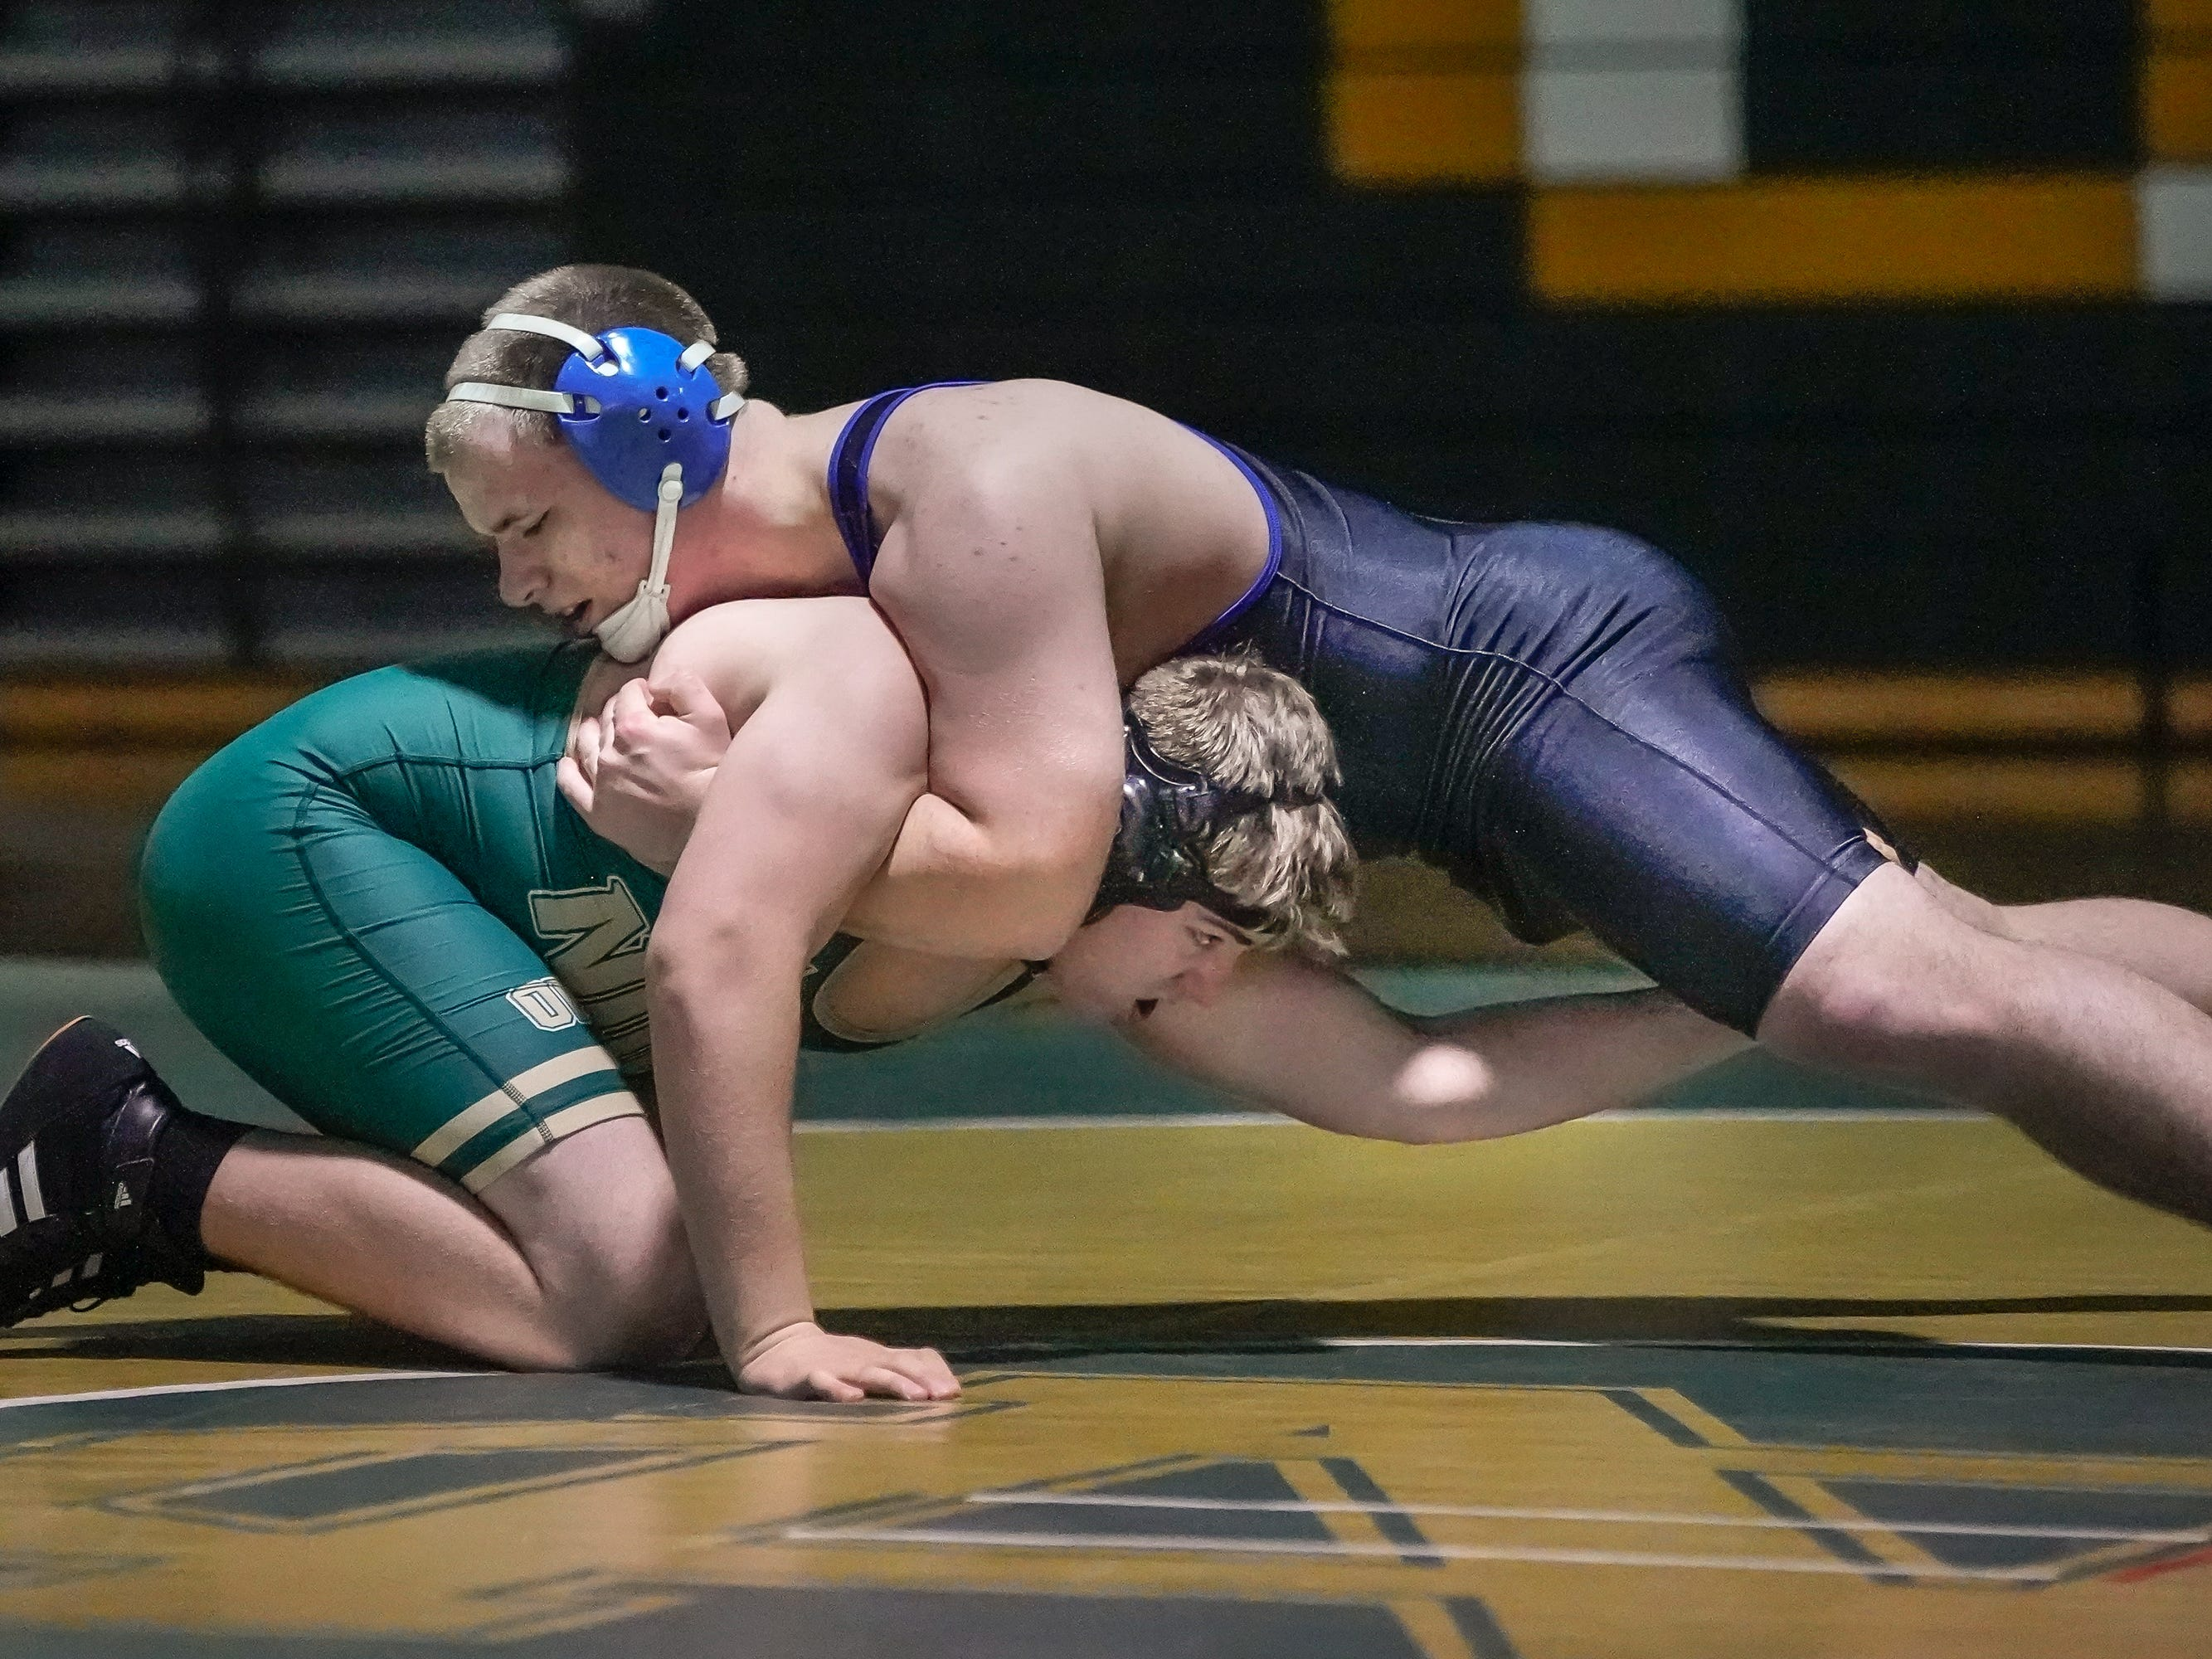 Matthew Mathusek  of Oshkosh North and Justin Oppermann of Oshkosh West wrestle in the 220-pound weight class. The Oshkosh North Spartans hosted the Oshkosh West Wildcats in a Fox Valley Association wrestling match Thursday evening, January 17, 2019.